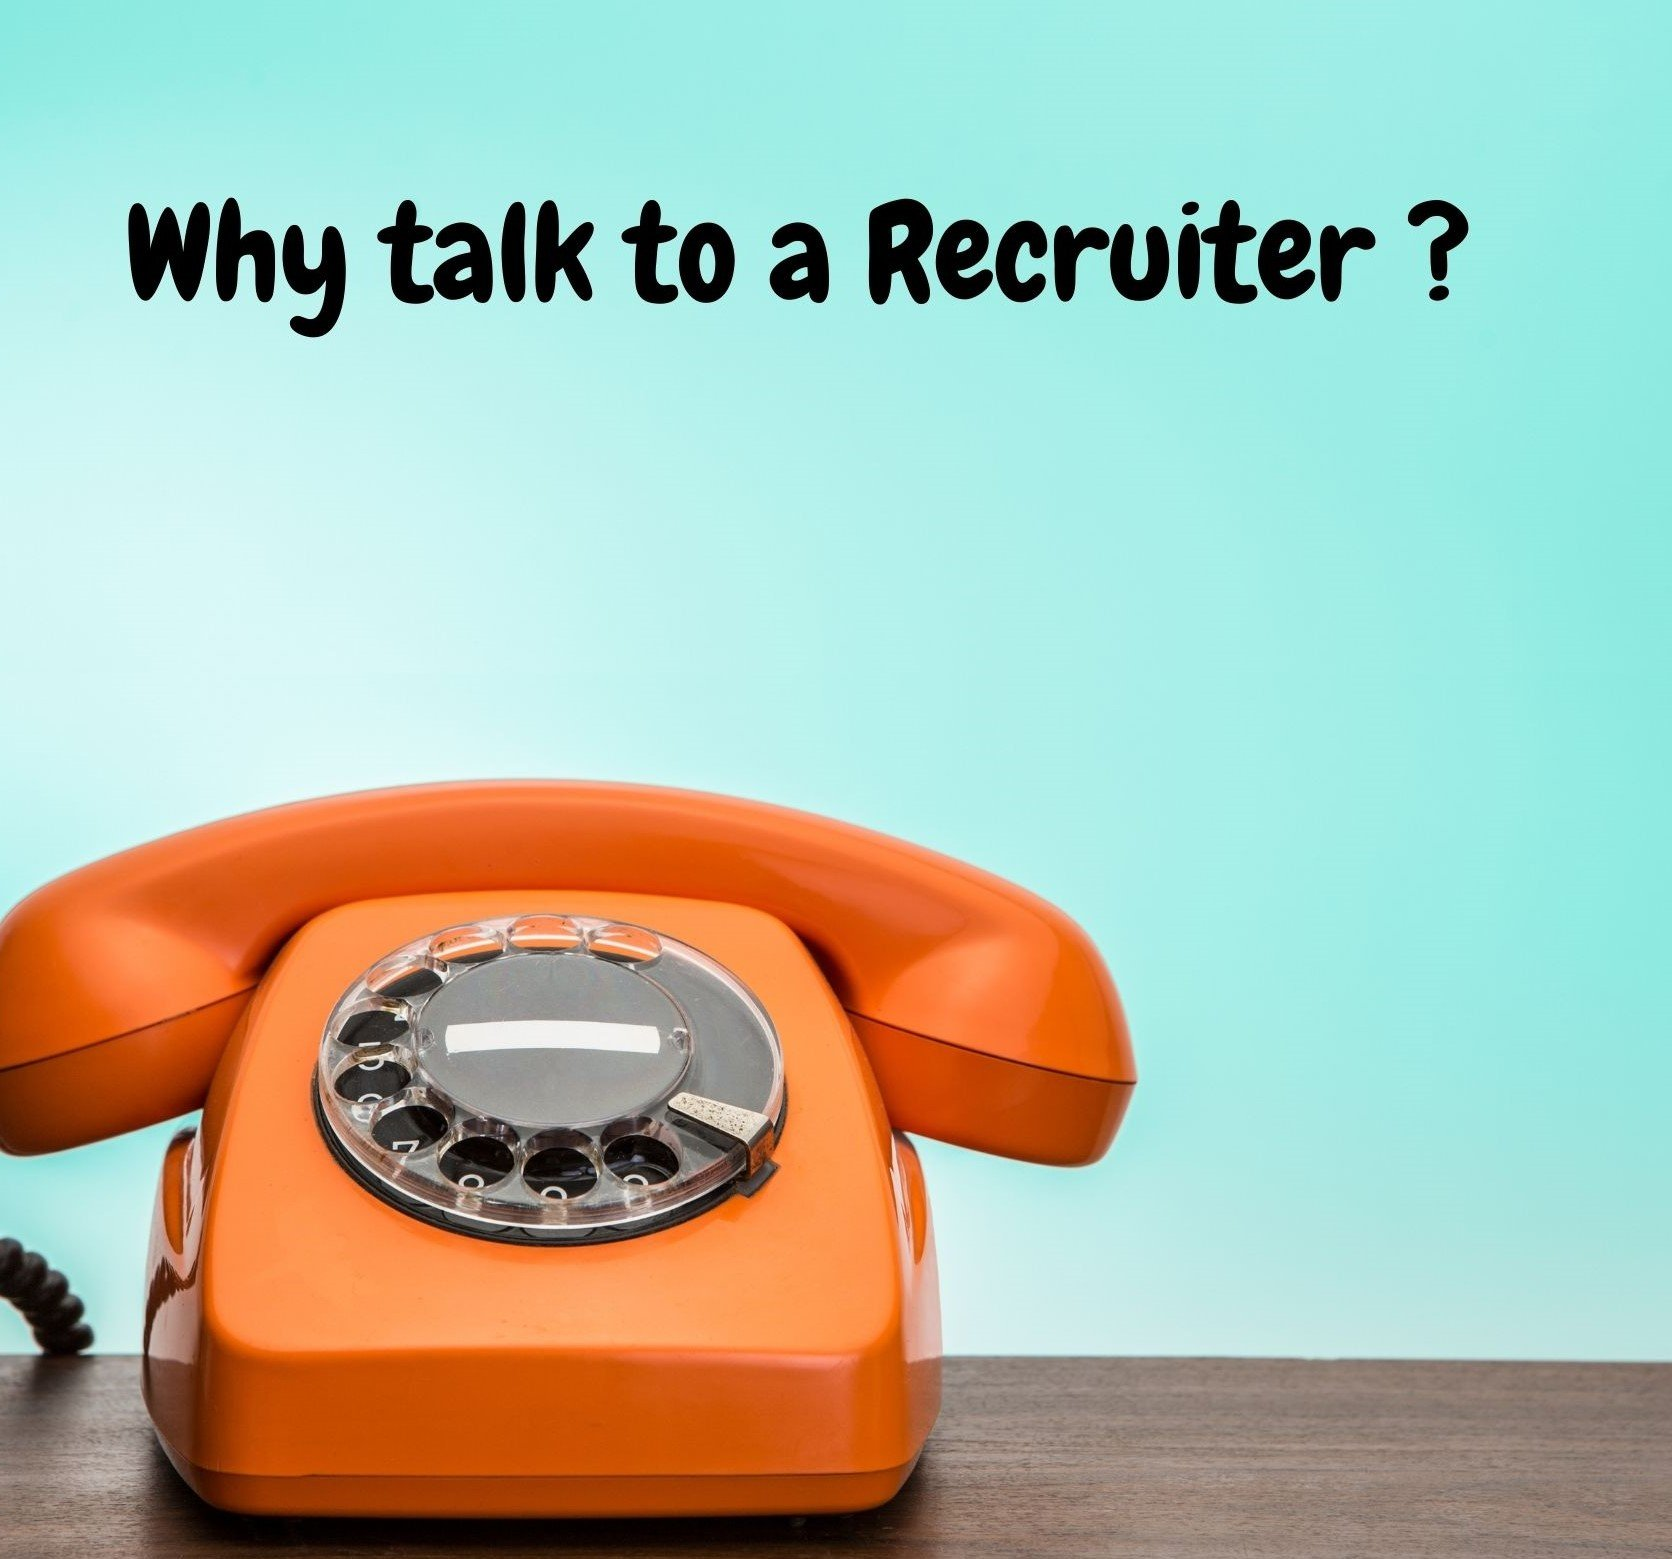 Why talk to a Recruiter blog